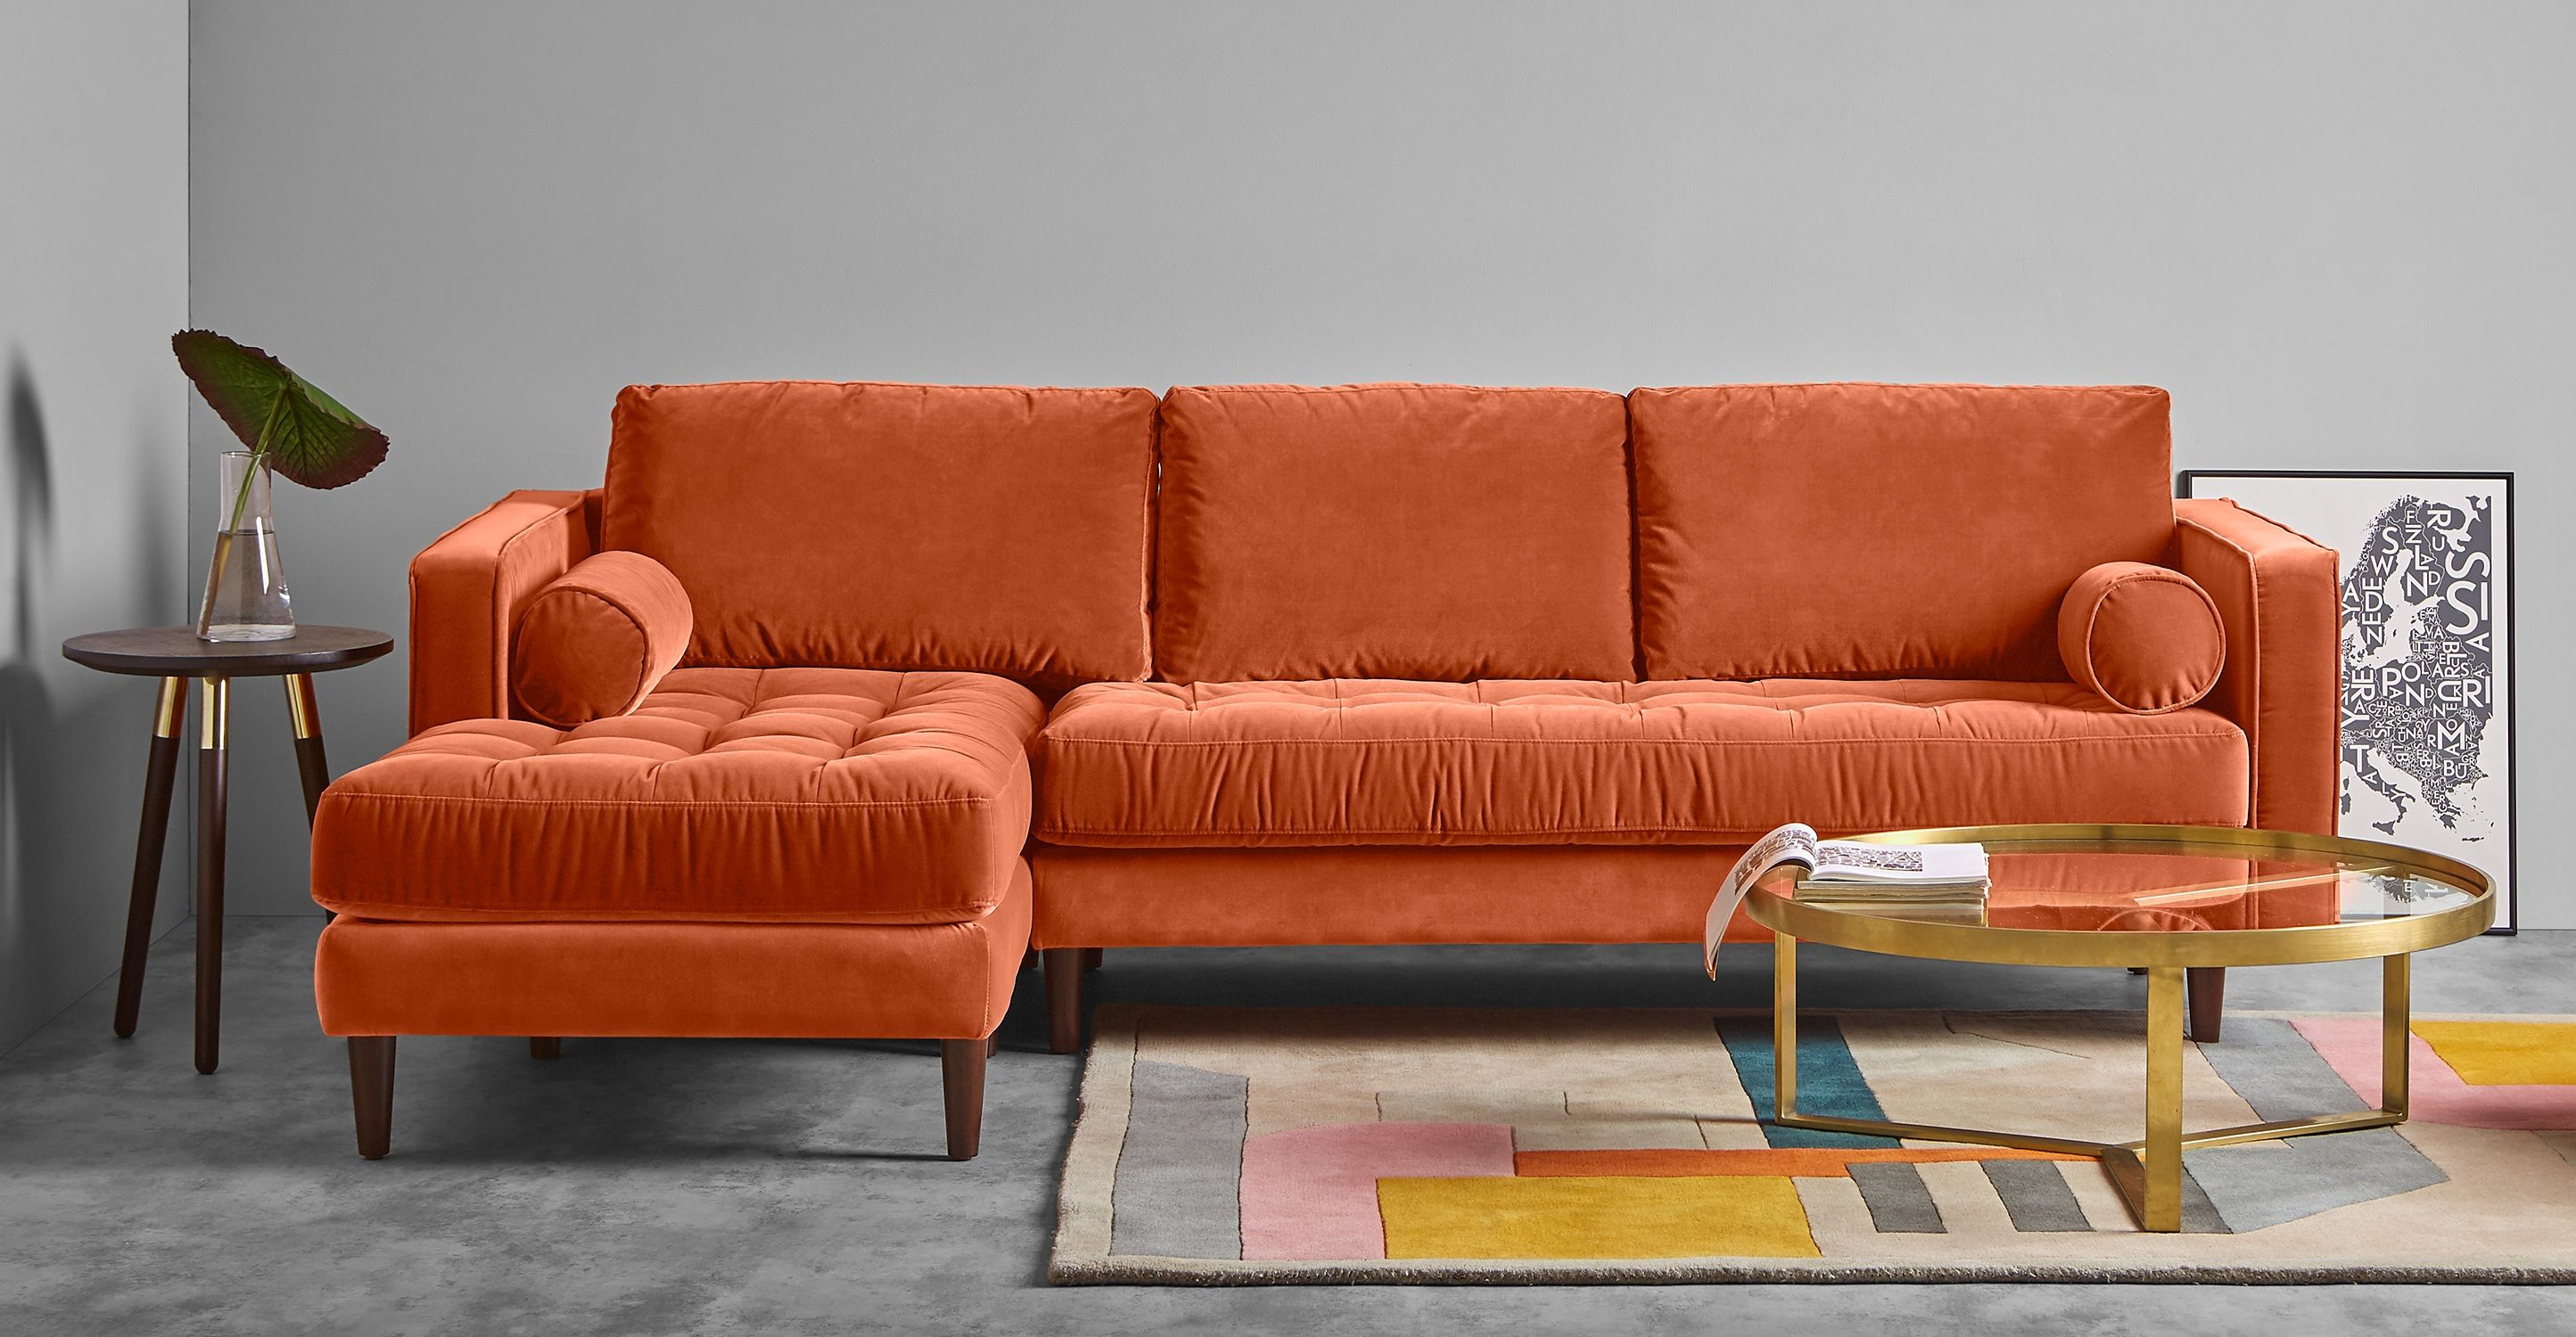 Gut Scott Ecksofa (Récamiere Links), Samt In Rostorange | Made.com